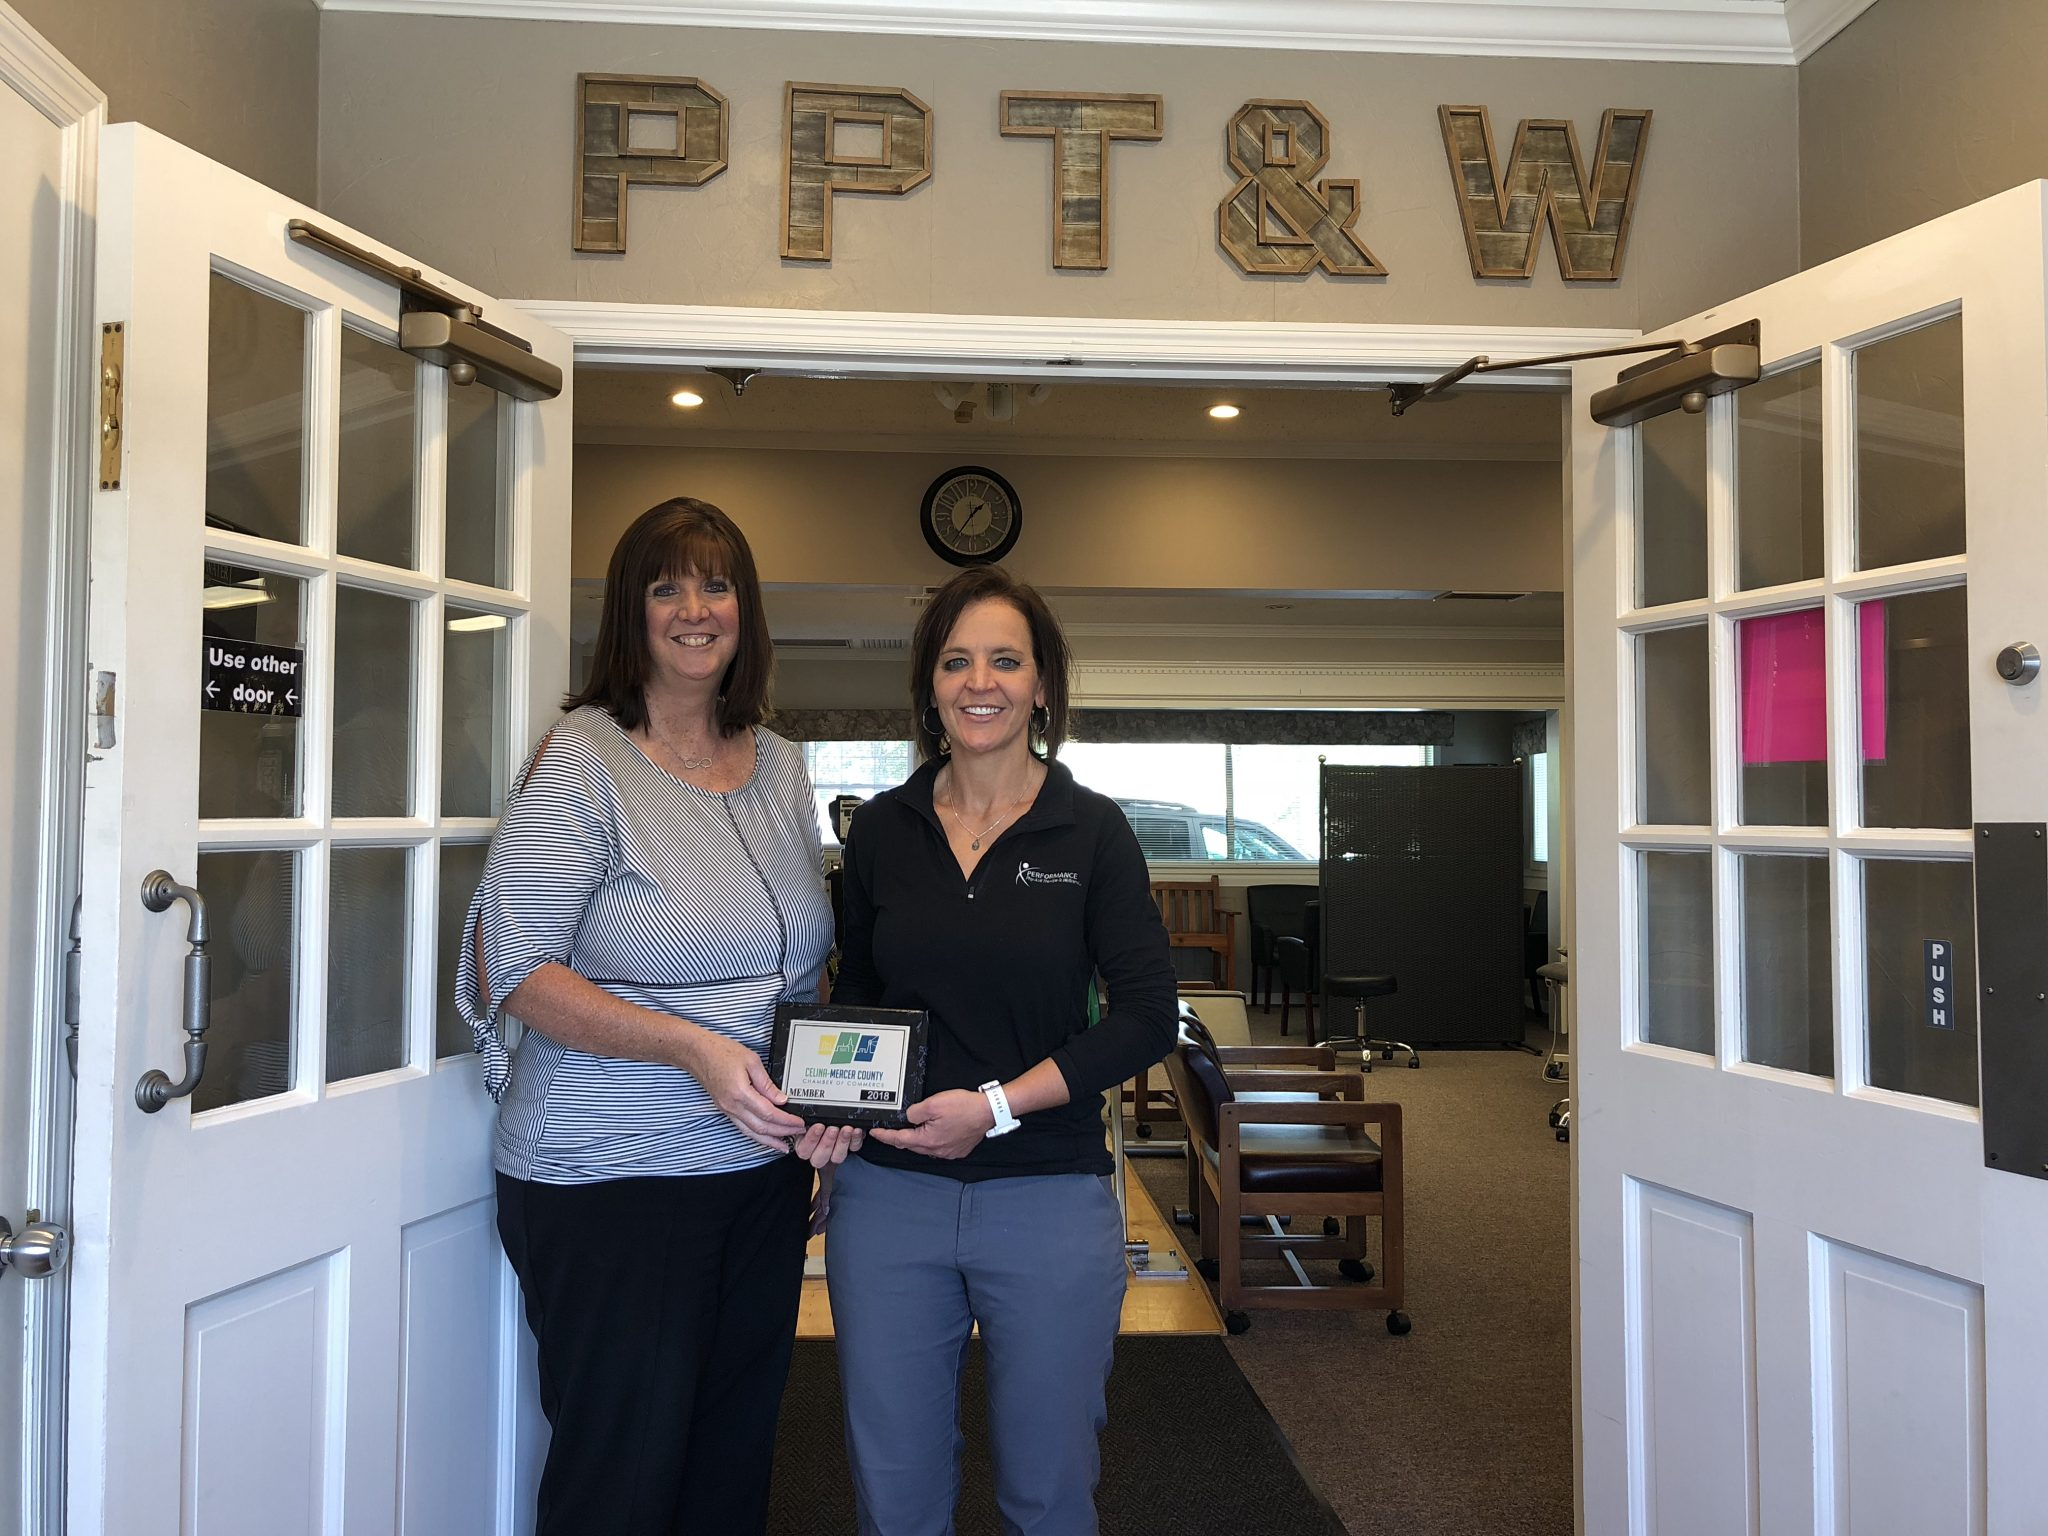 Performance Physical Therapy & Wellness joins Chamber